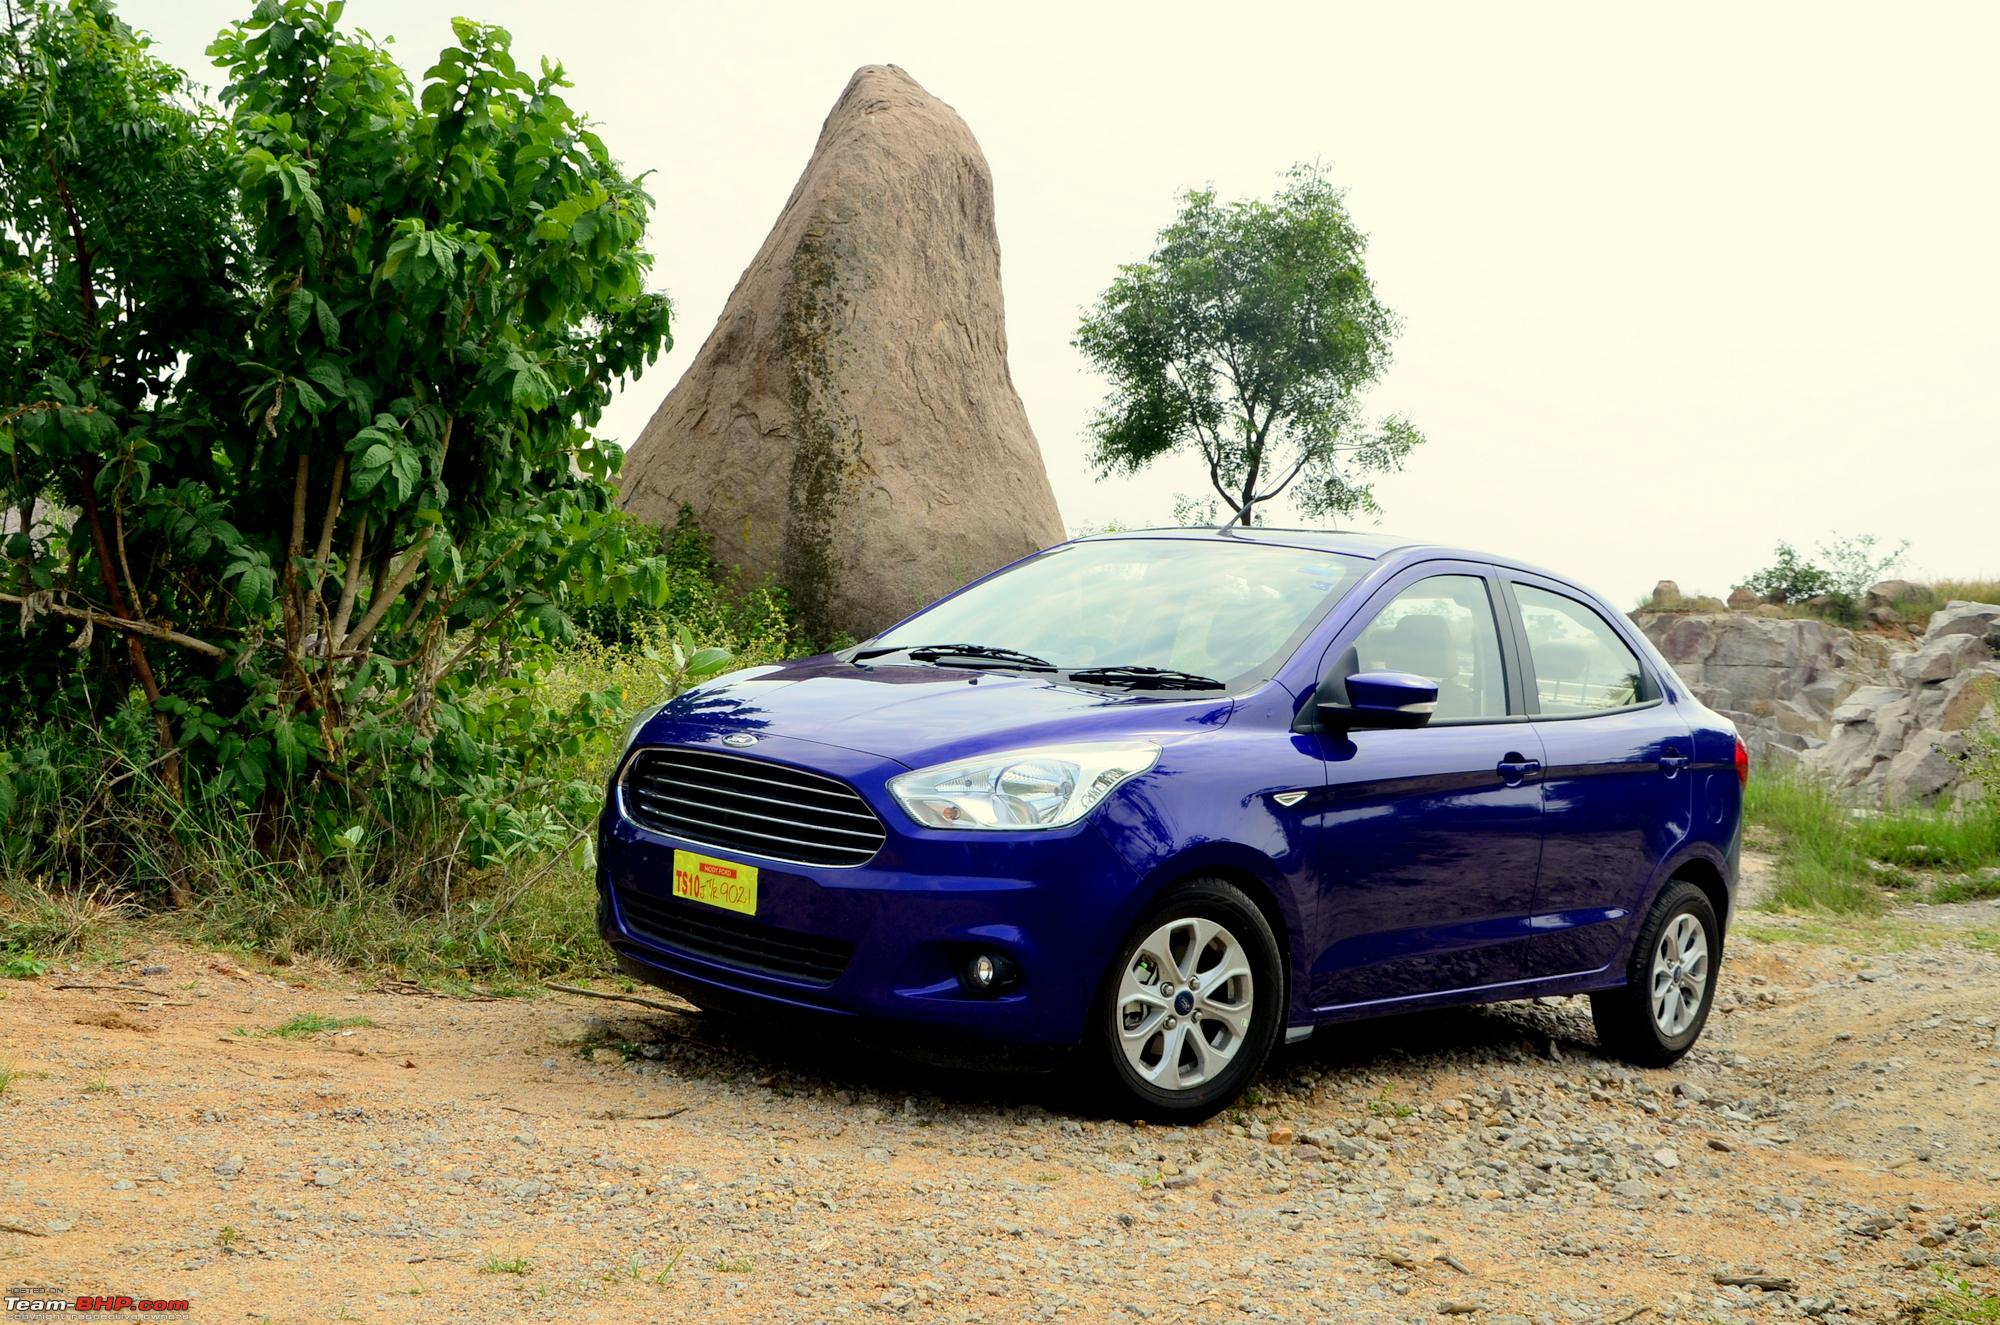 Ford aspire tdci my blue bombardier flying low on tarmac edit 30 000kms completed team bhp